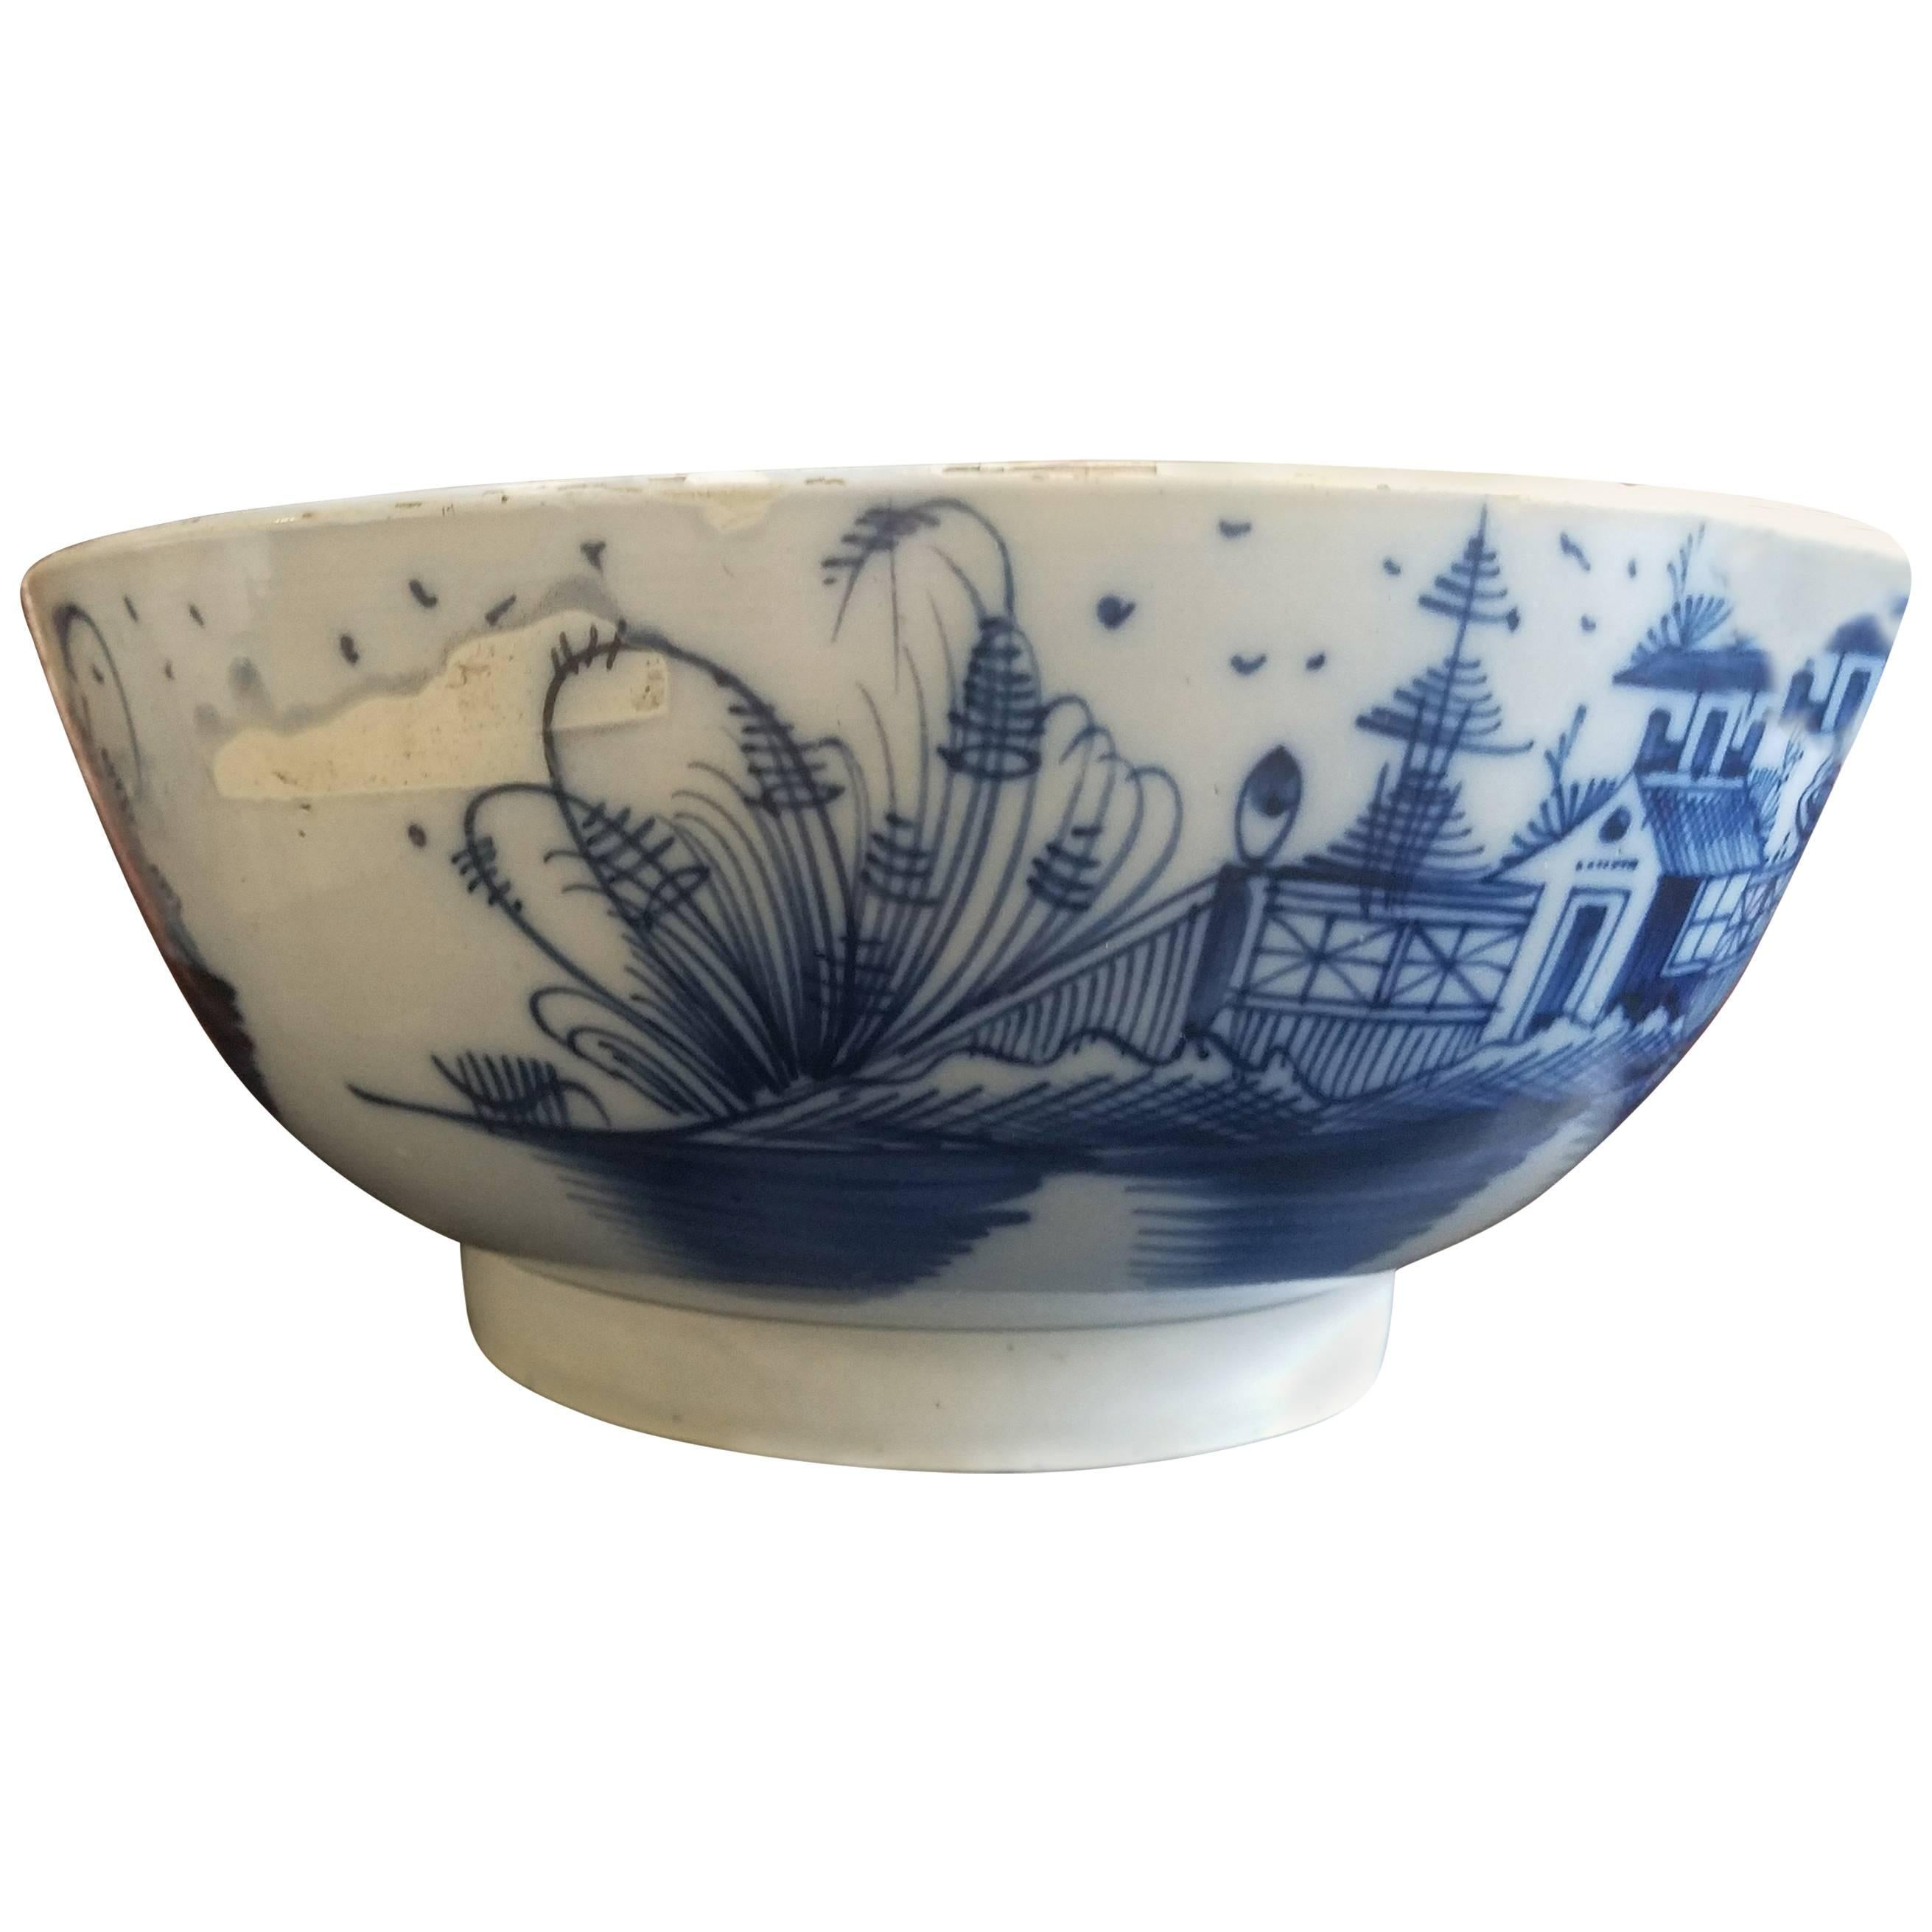 English Blue and White Pearlware Pottery Chinoiserie Bowl, 1790